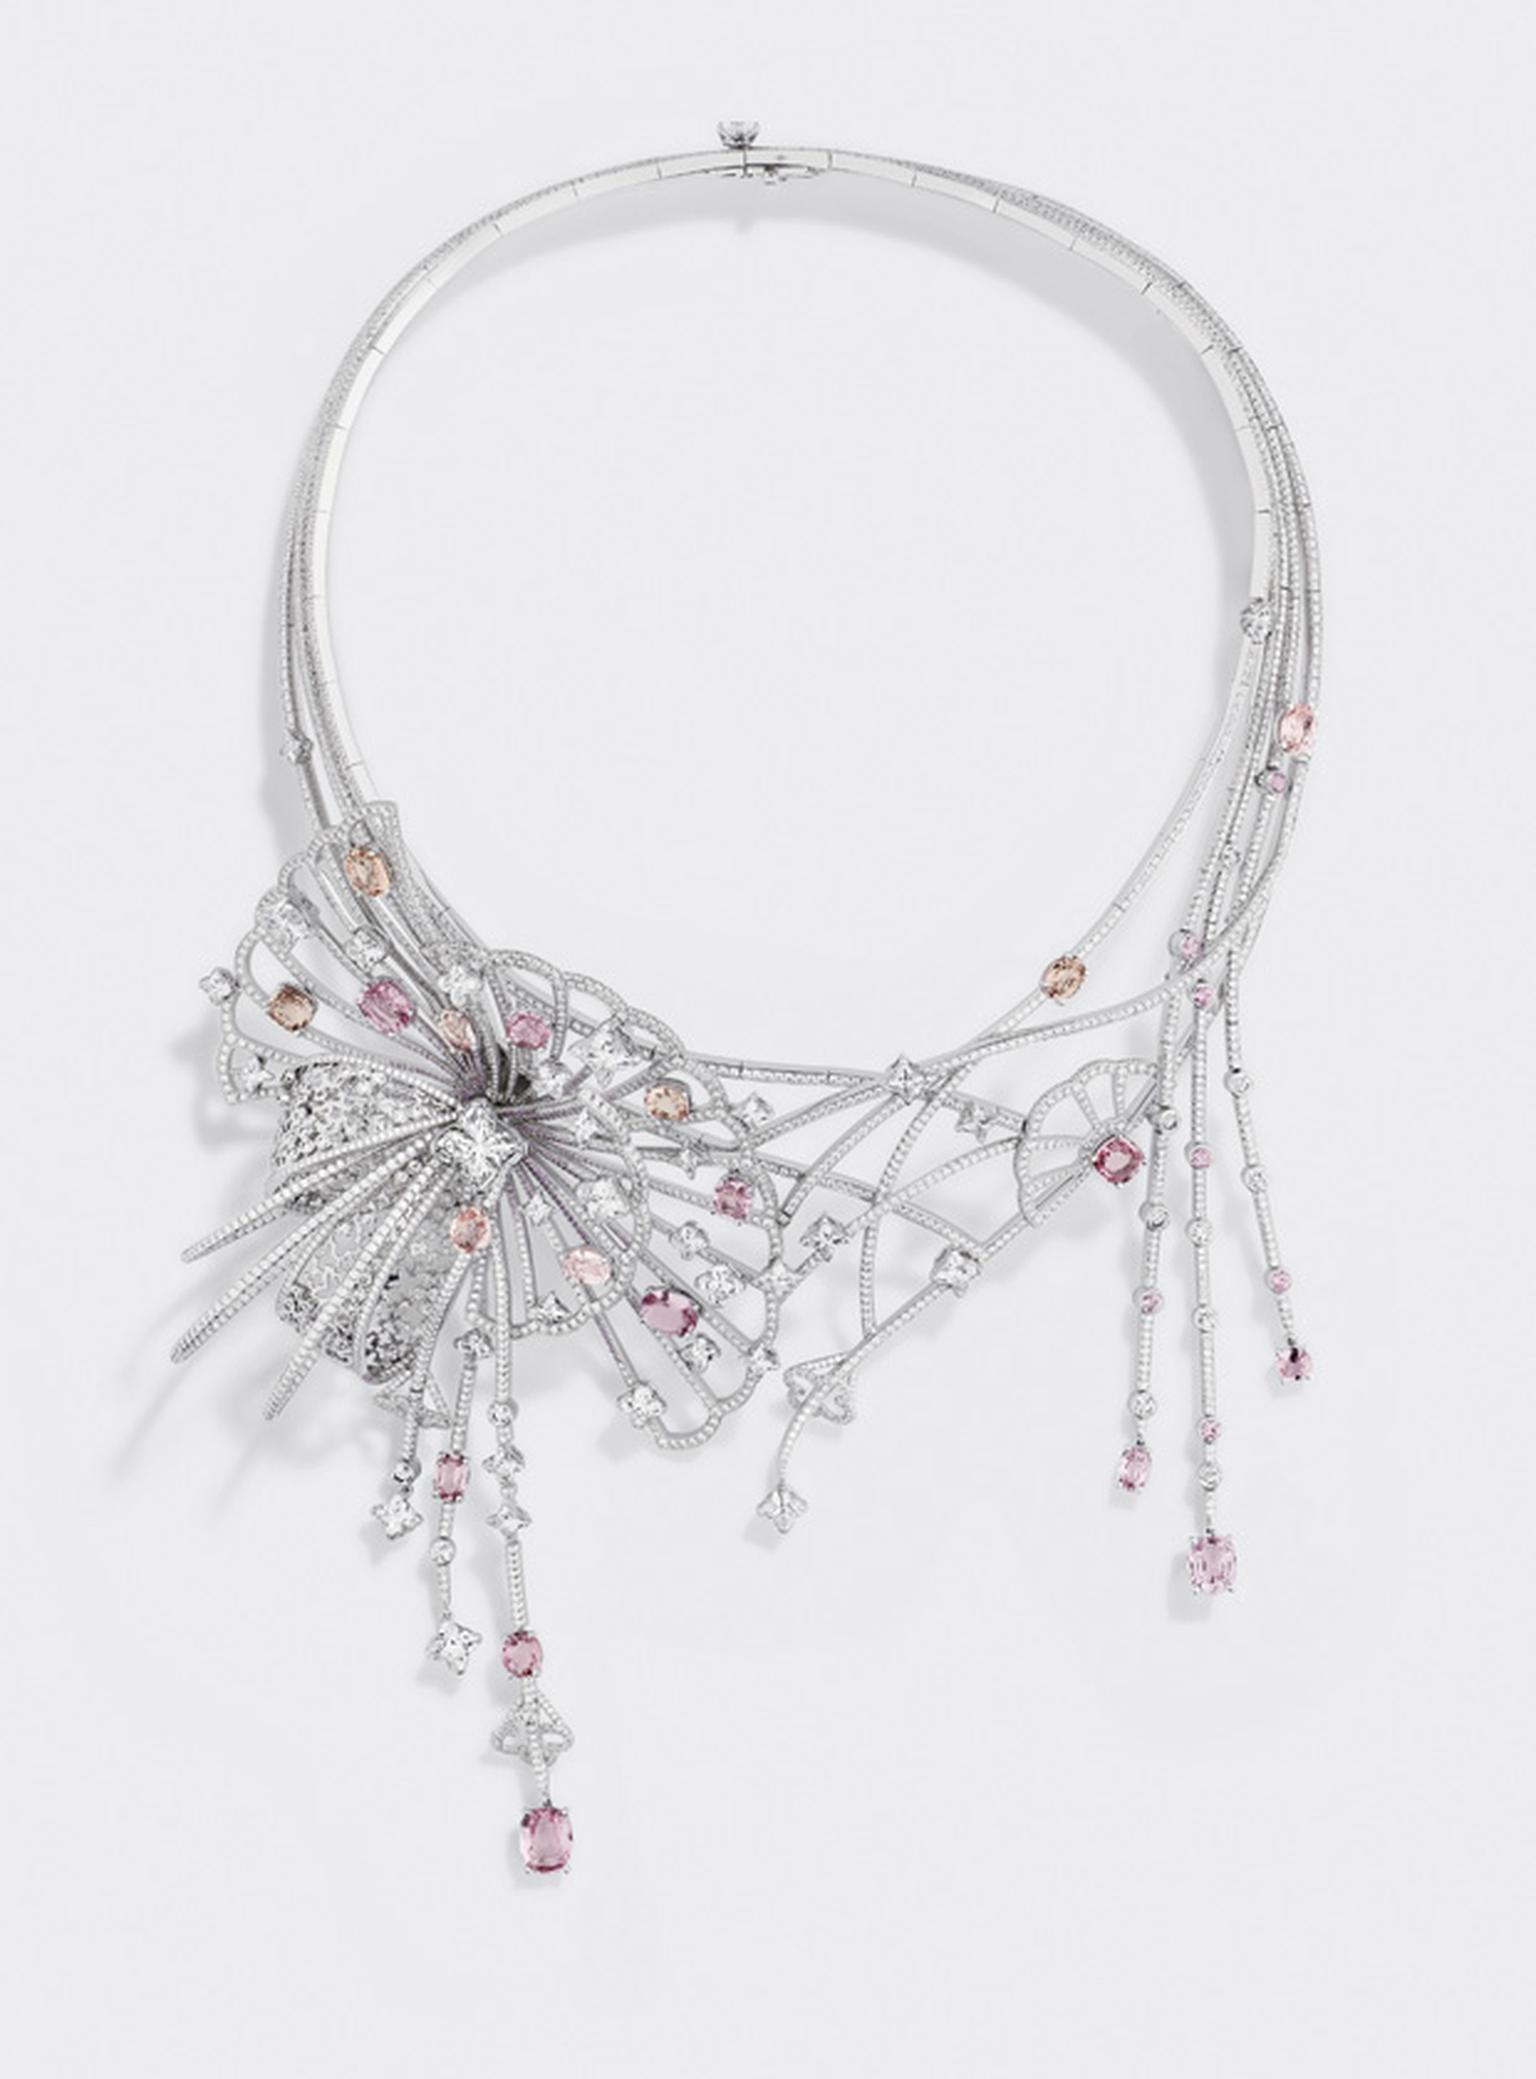 Louis Vuitton L'Ame du Voyage necklace 2 with diamonds